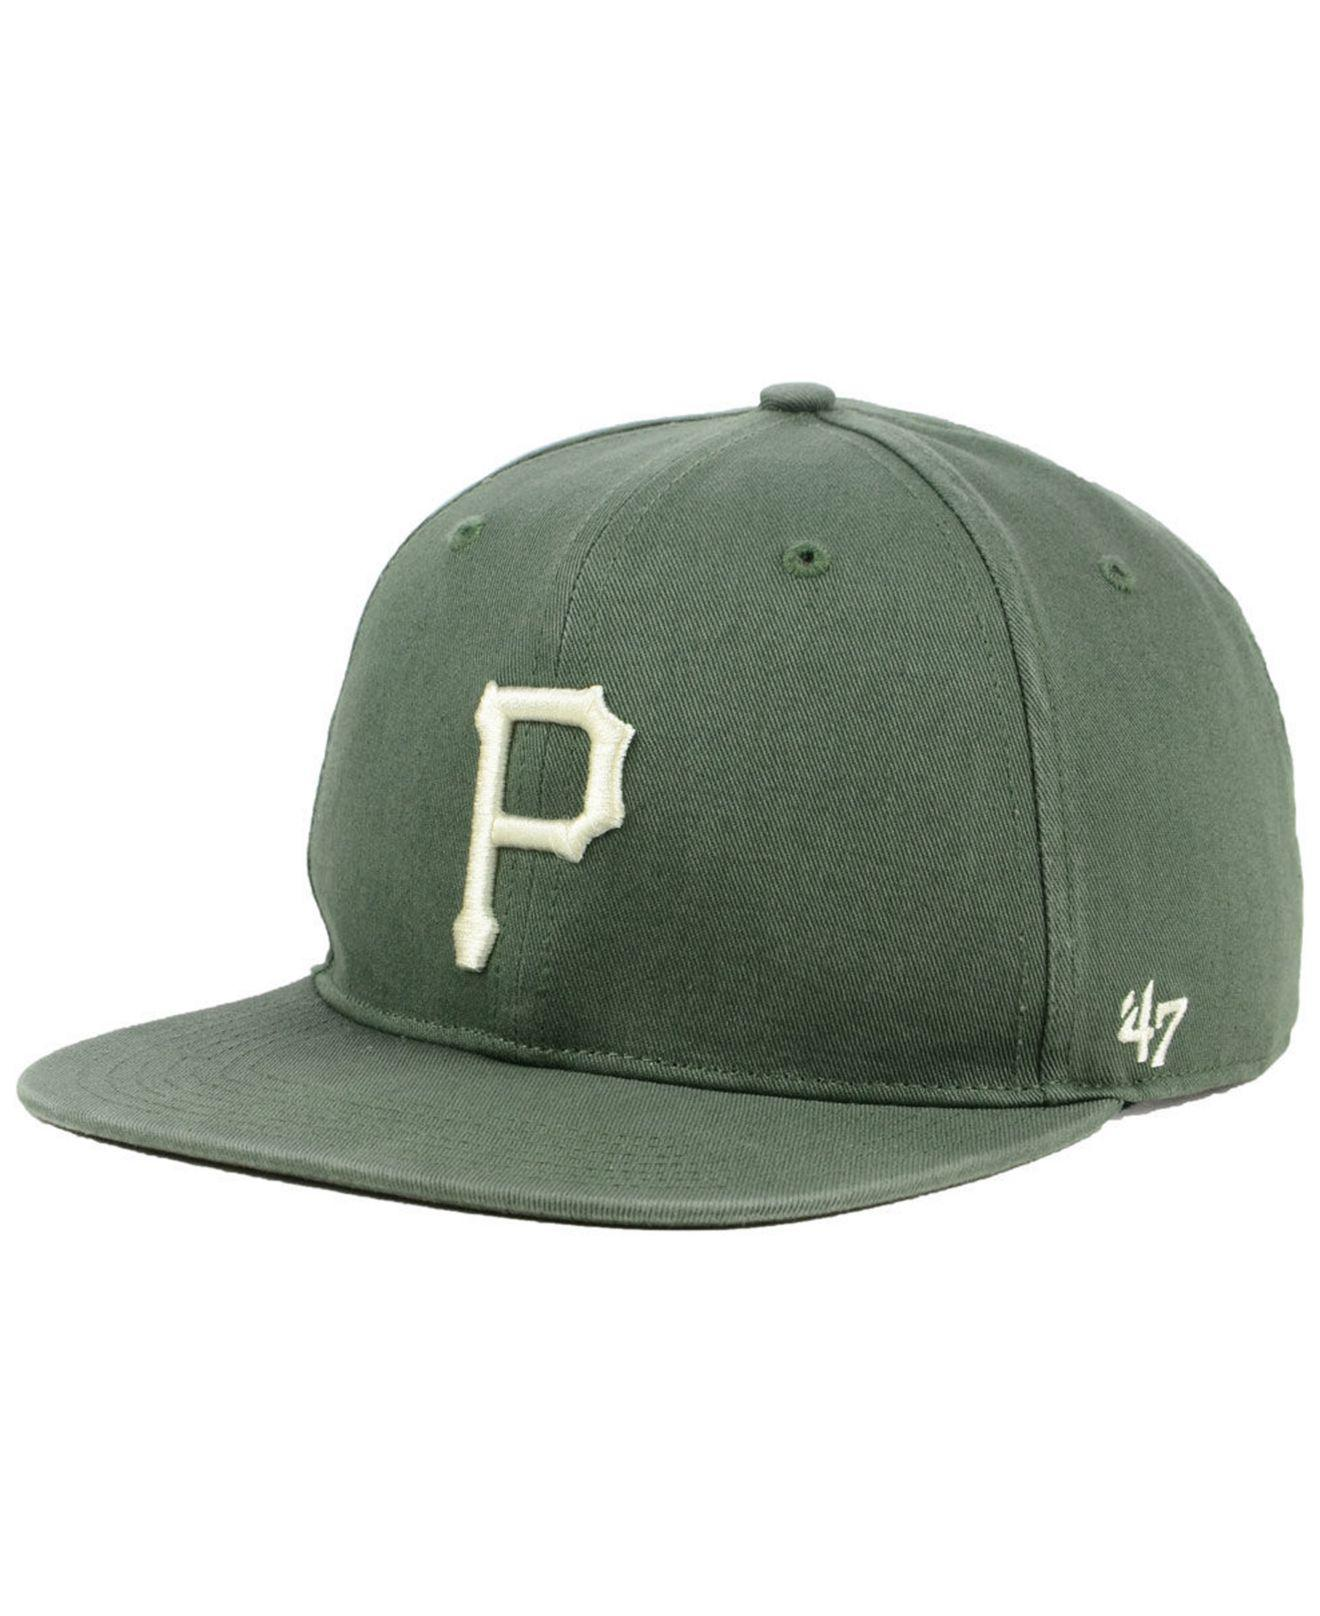 1cd83814846 Lyst - 47 Brand Pittsburgh Pirates Moss Snapback Cap in Green for Men